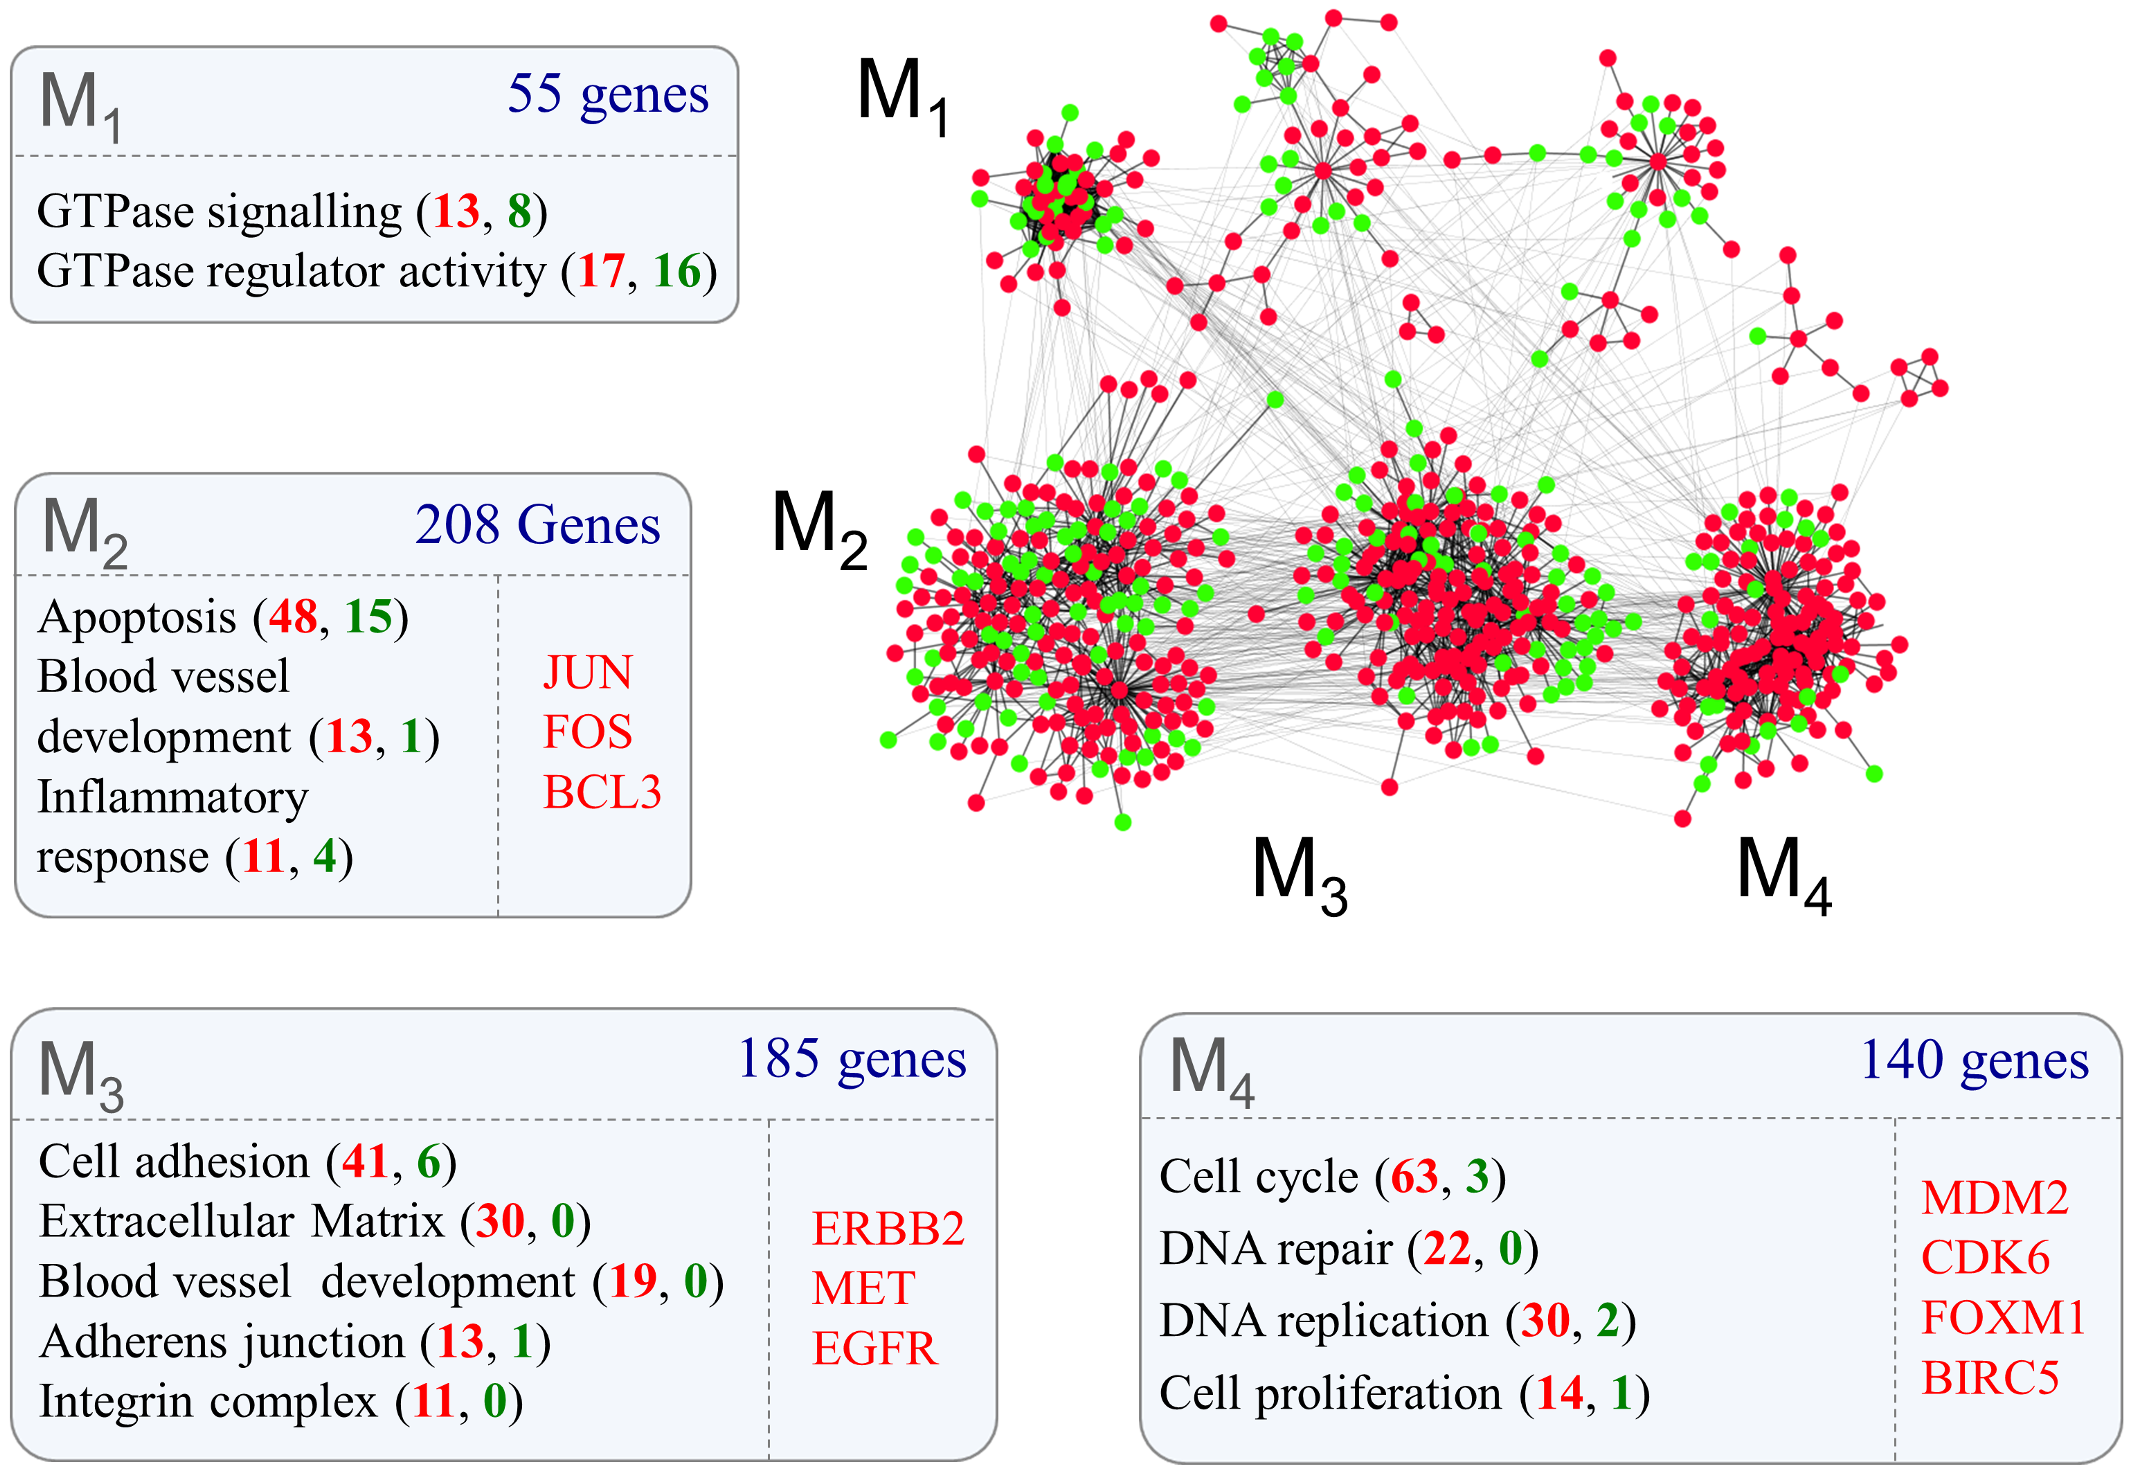 Protein-protein interaction networks representing glioma grade transition reveal functionally distinct modules.